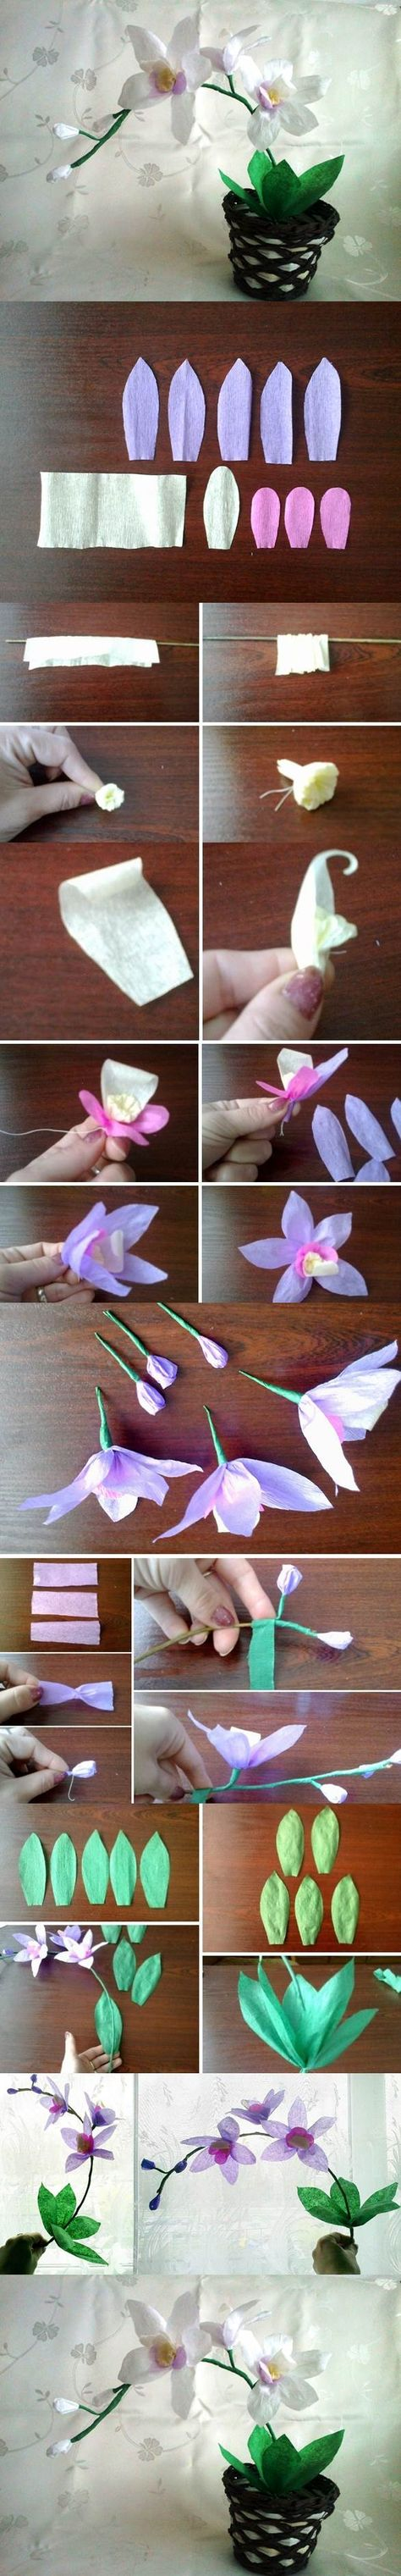 DIY Crepe Paper Orchids | iCreativeIdeas.com Like Us on Facebook ==> https://www.facebook.com/icreativeideas